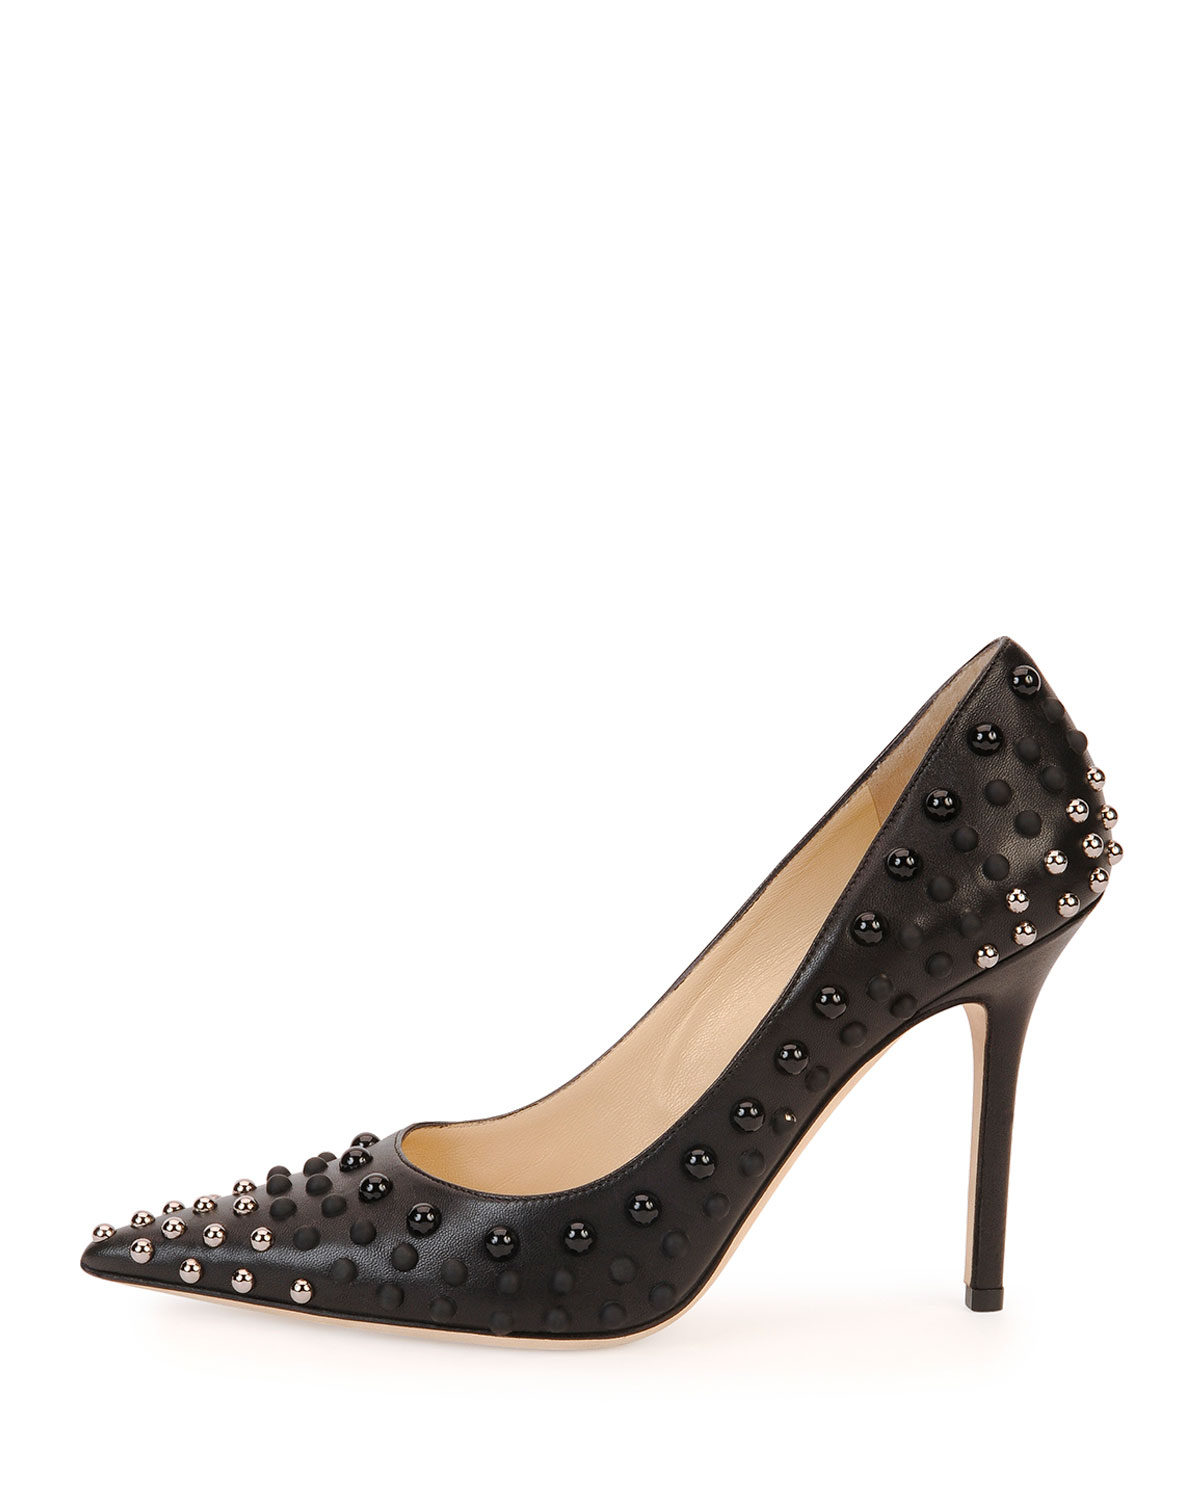 b6e7625d8a4a Lyst - Jimmy Choo Abel Studded Point-toe Pump in Black